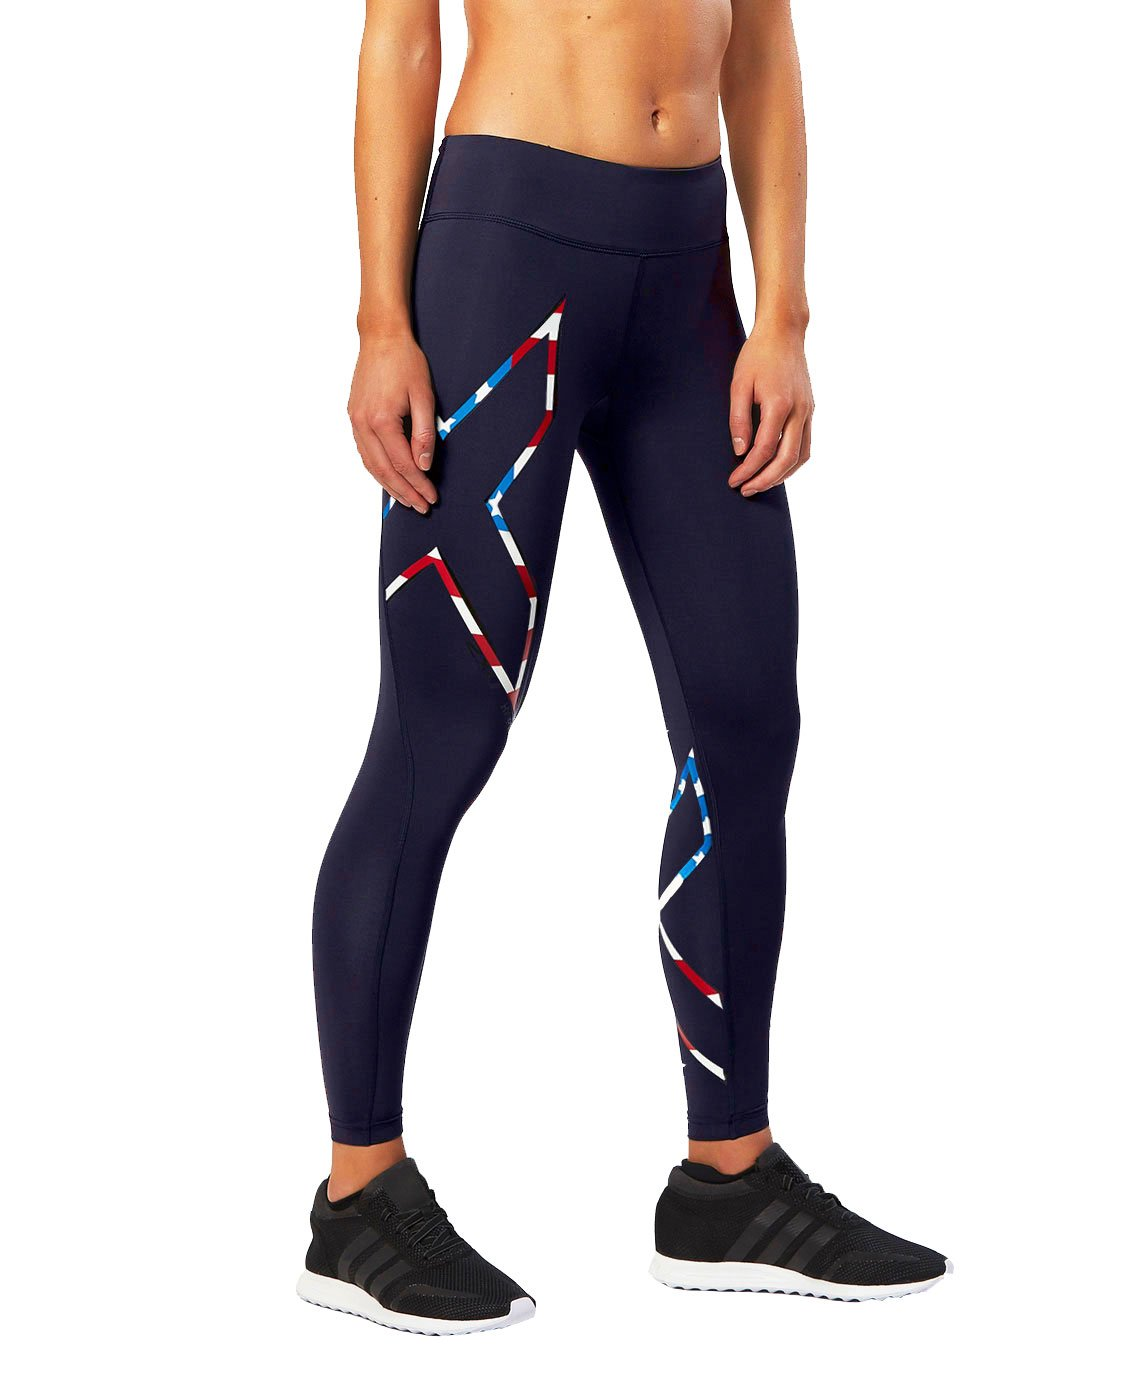 2XU Women's Mid-Rise Compression Tights, Navy/USA Stars Stripes, Medium by 2XU